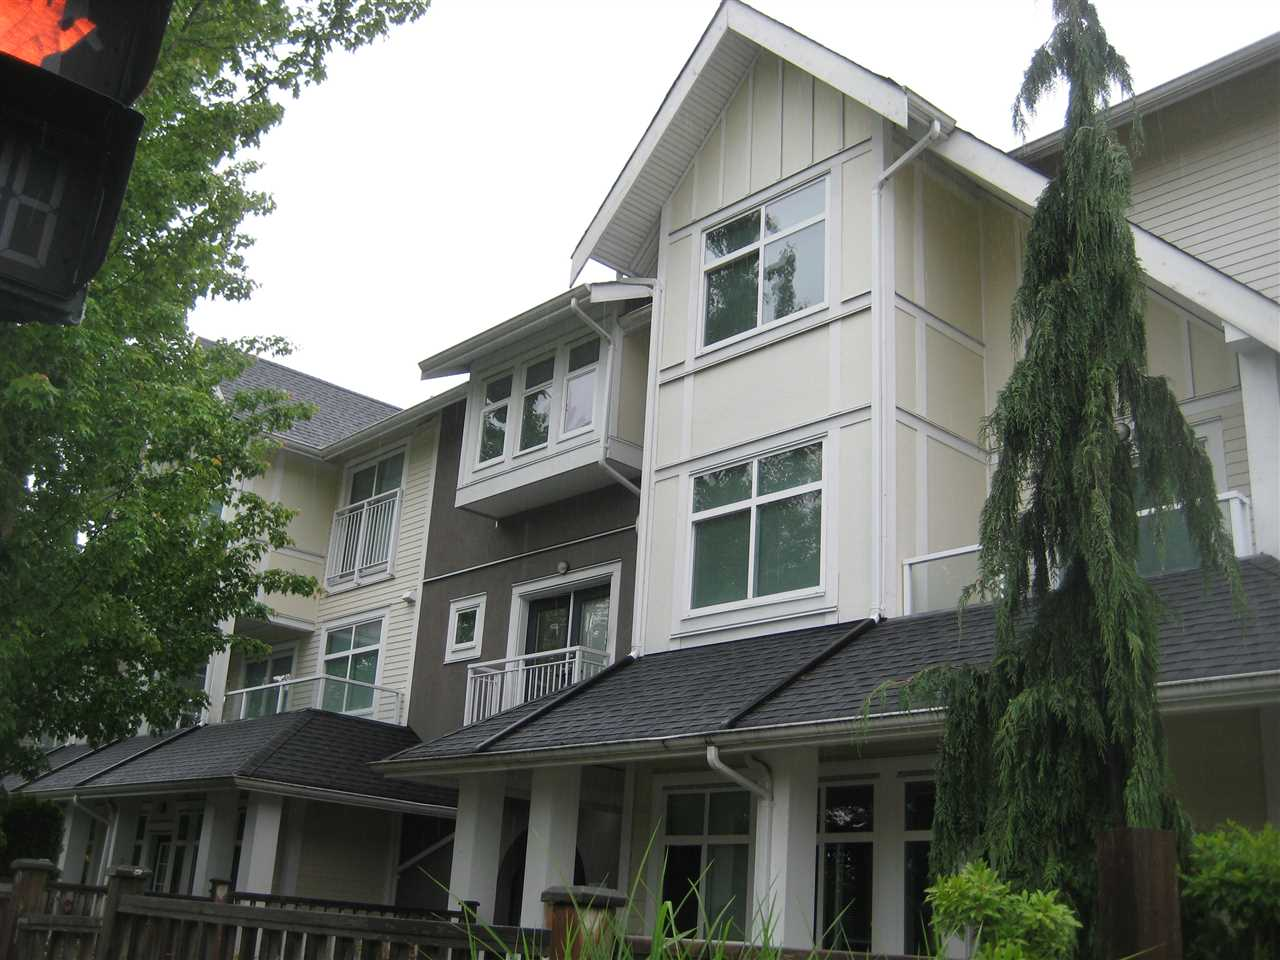 Junior 2 bedrooms well kept ground level unit. Located at the quiet side of the complex. Excellent location close to bus route to SFU, and recreation shopping all near by.. Open kitchen concept with good sized quartz counter kitchen island and breakfast bar. Insuite laundry and gas stove. Low strata fee include gas and hotwater. No rental restriction, great value for either more in or as investment tool. One parking stall and one locker included. Freshly painted and ready to move in. Don't miss this one.